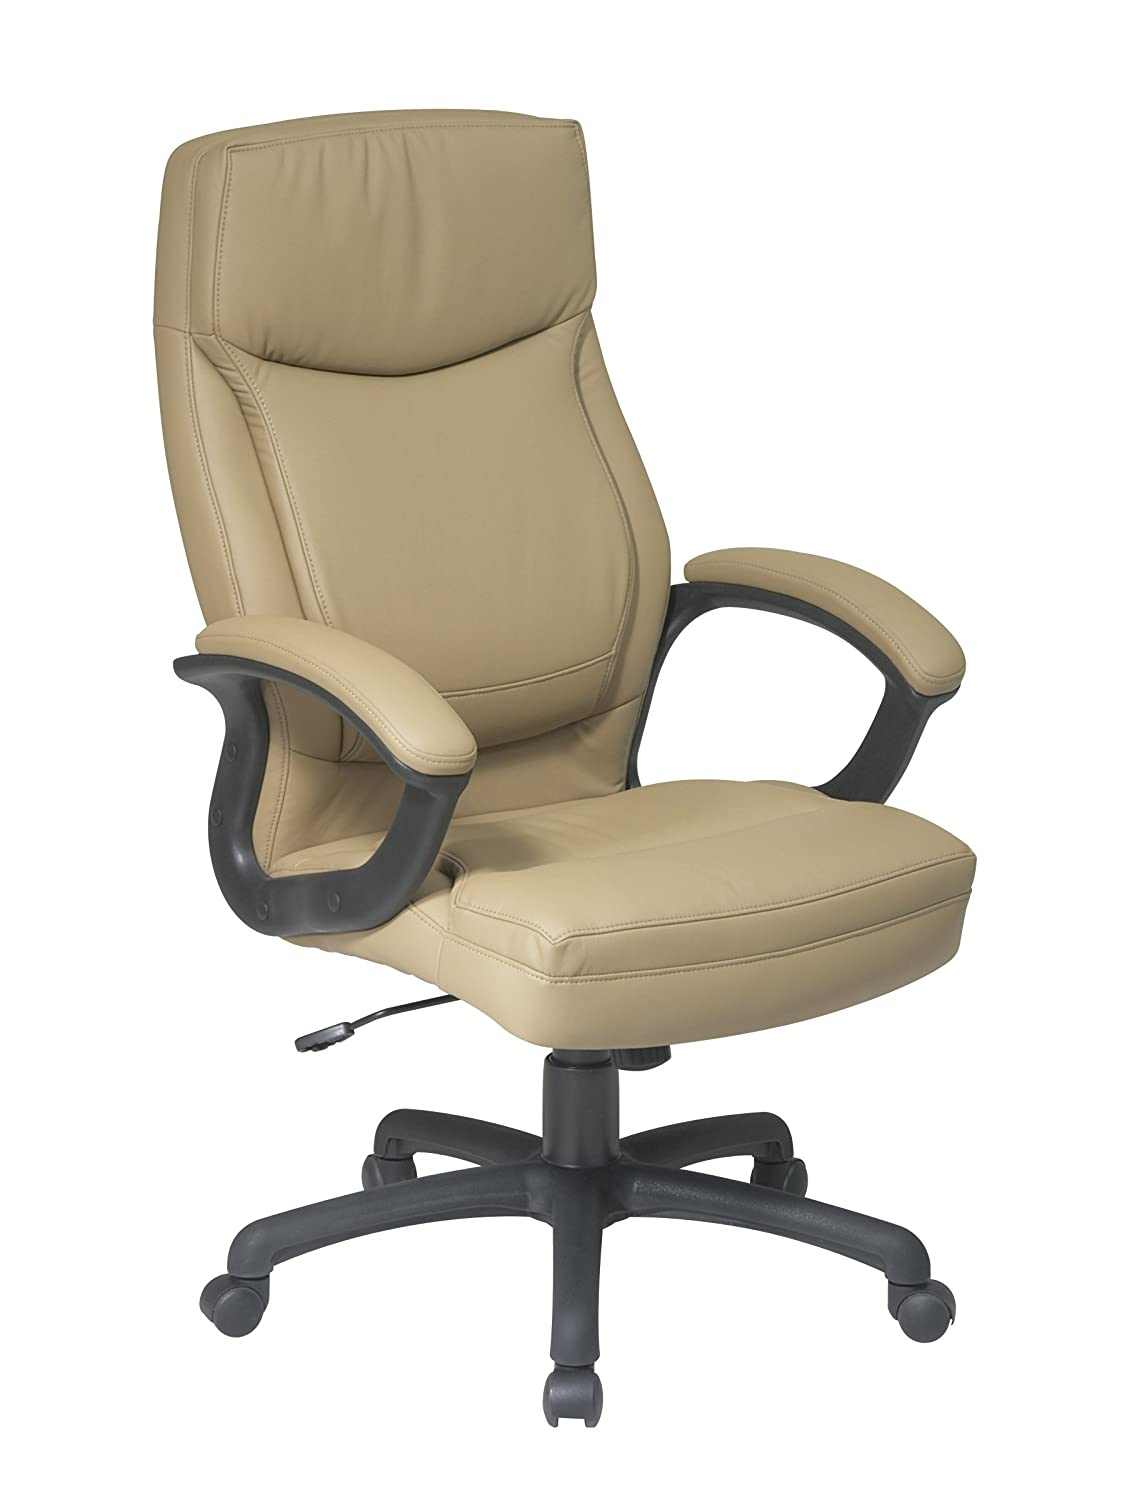 office chairs for heavy people best ergonomic chair star executive reviewed